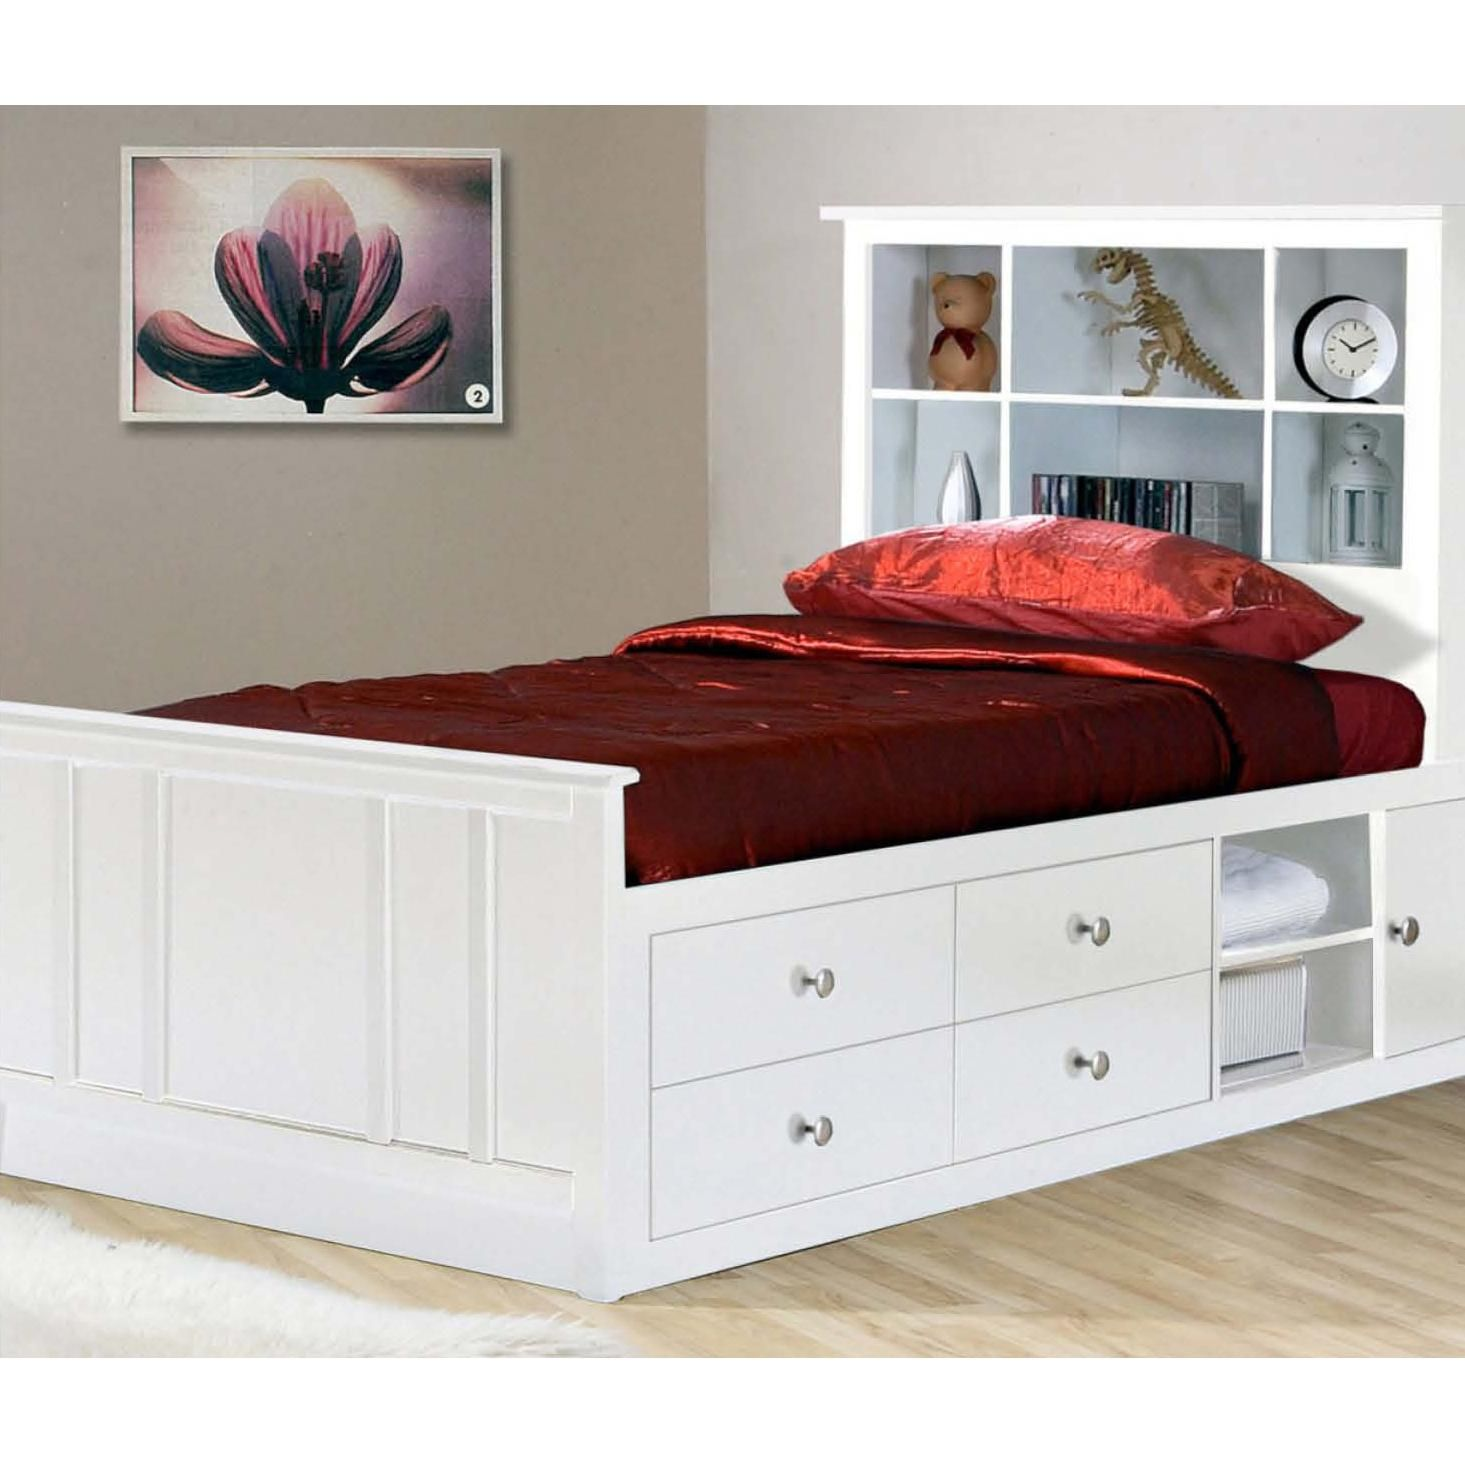 Millie (white) Millie (white) Twin Captain's Bed by ...